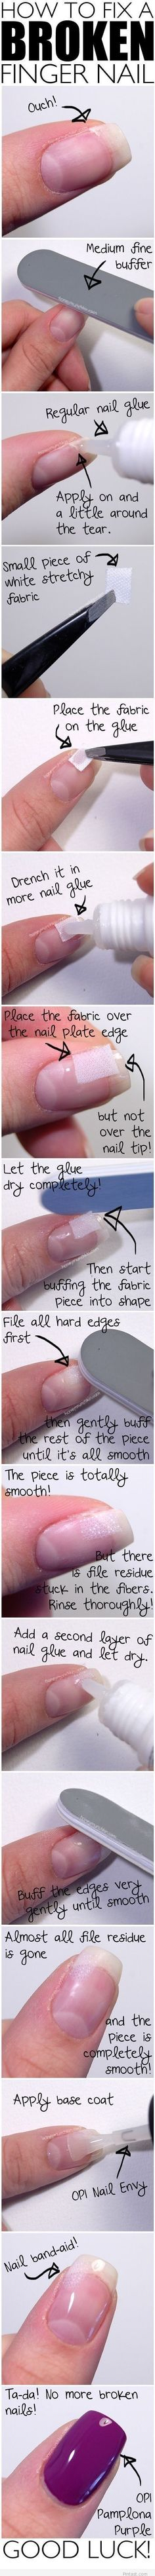 When I have a broken nail I do this